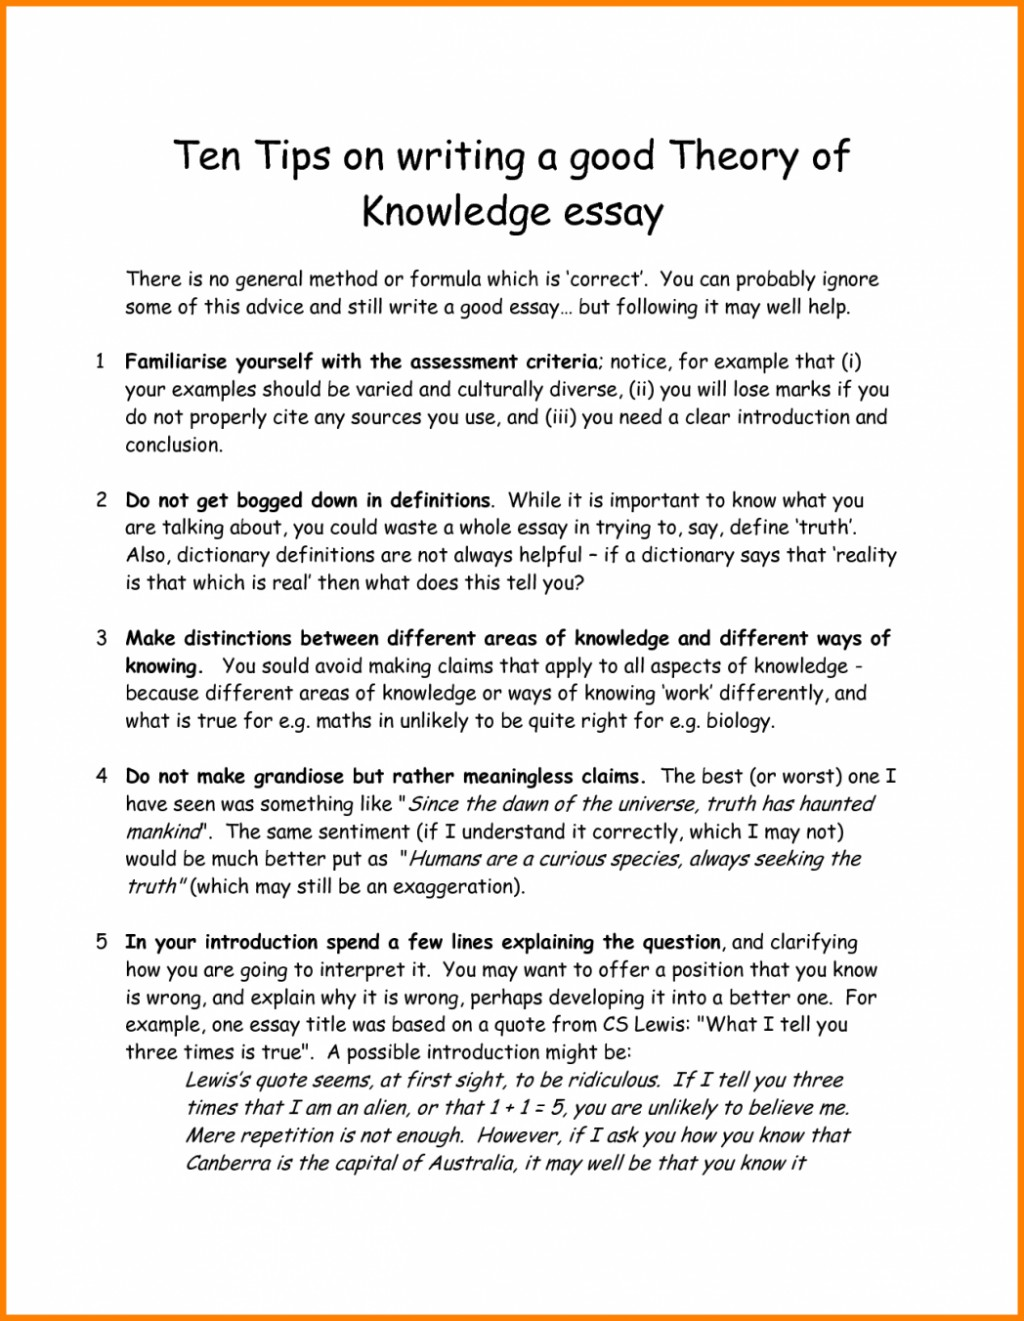 019 Good Ways To Startssaynglish The Paragraph How An Observationxamples Off About Yourself Ledger Pa Informative Writing Analysis Conclusion Academic Applicationxpository 1048x1352 Unusual Start Essay A History Sentence For Write Expository Large